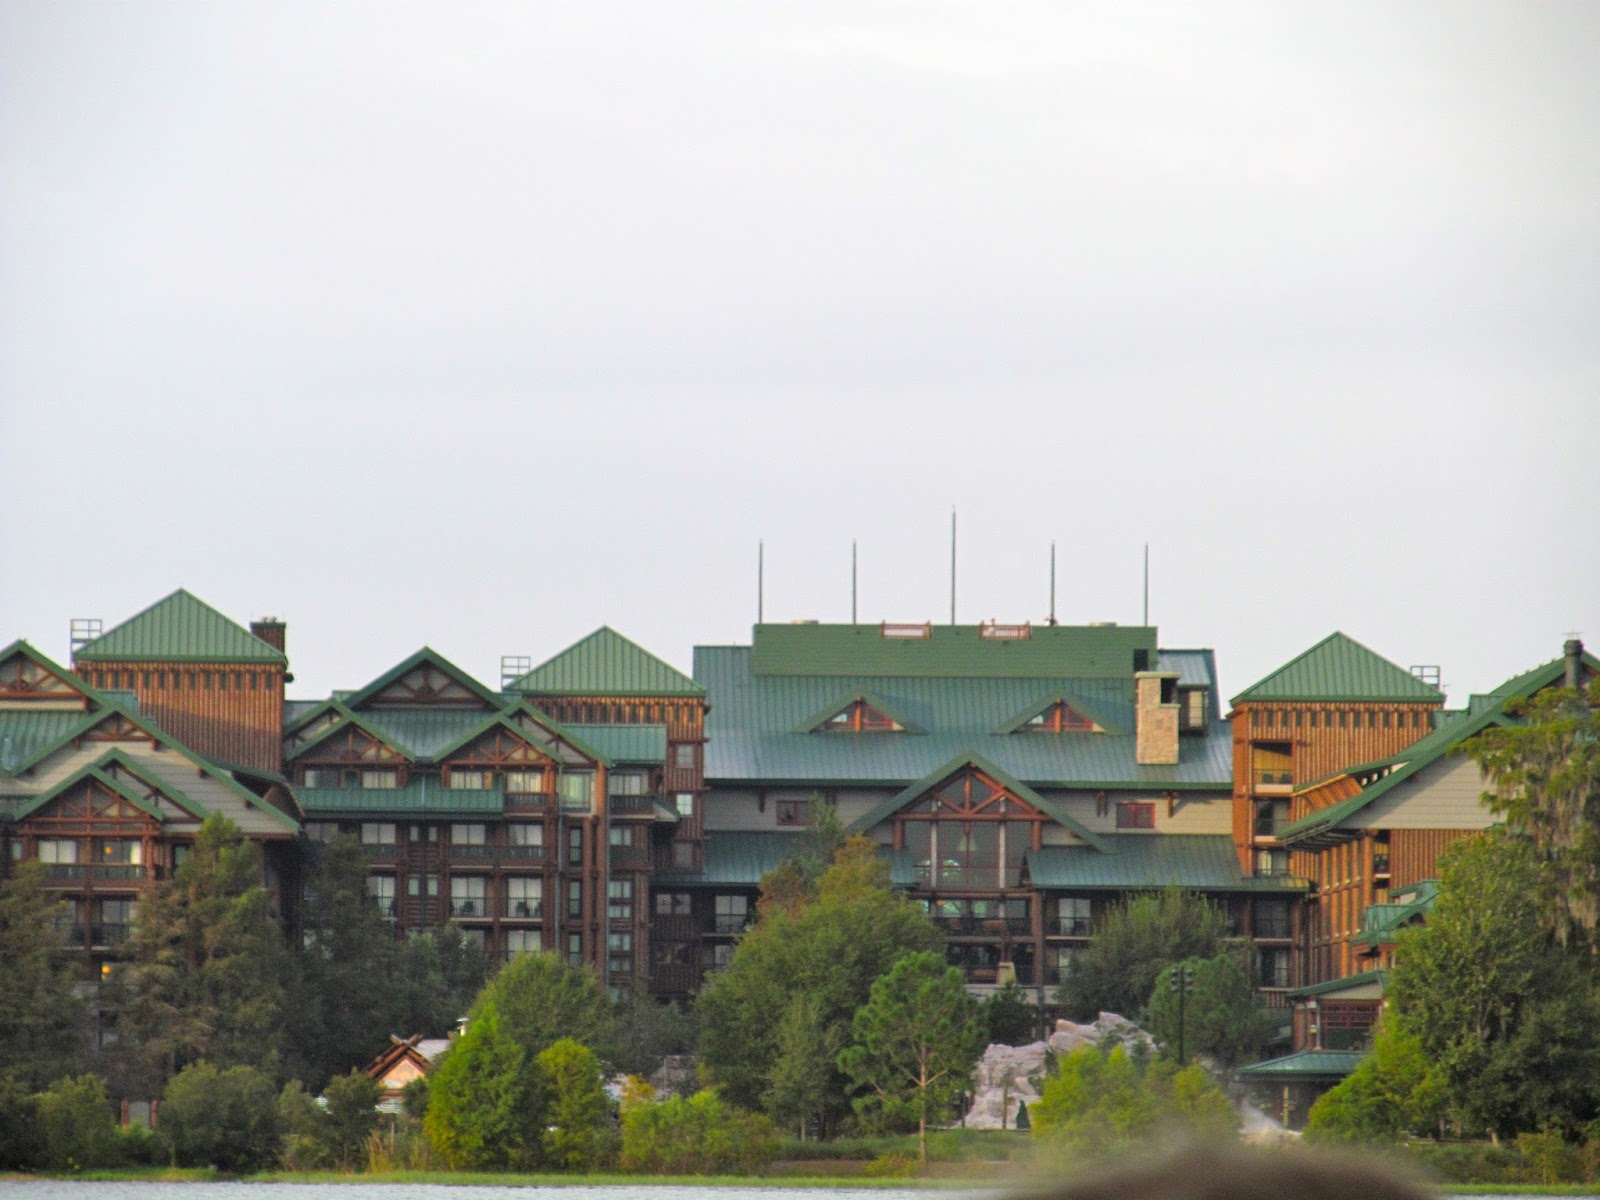 Fort Wilderness Lodge - Walt Disney World Resort - www.ouroutdoortravels.blogspot.com